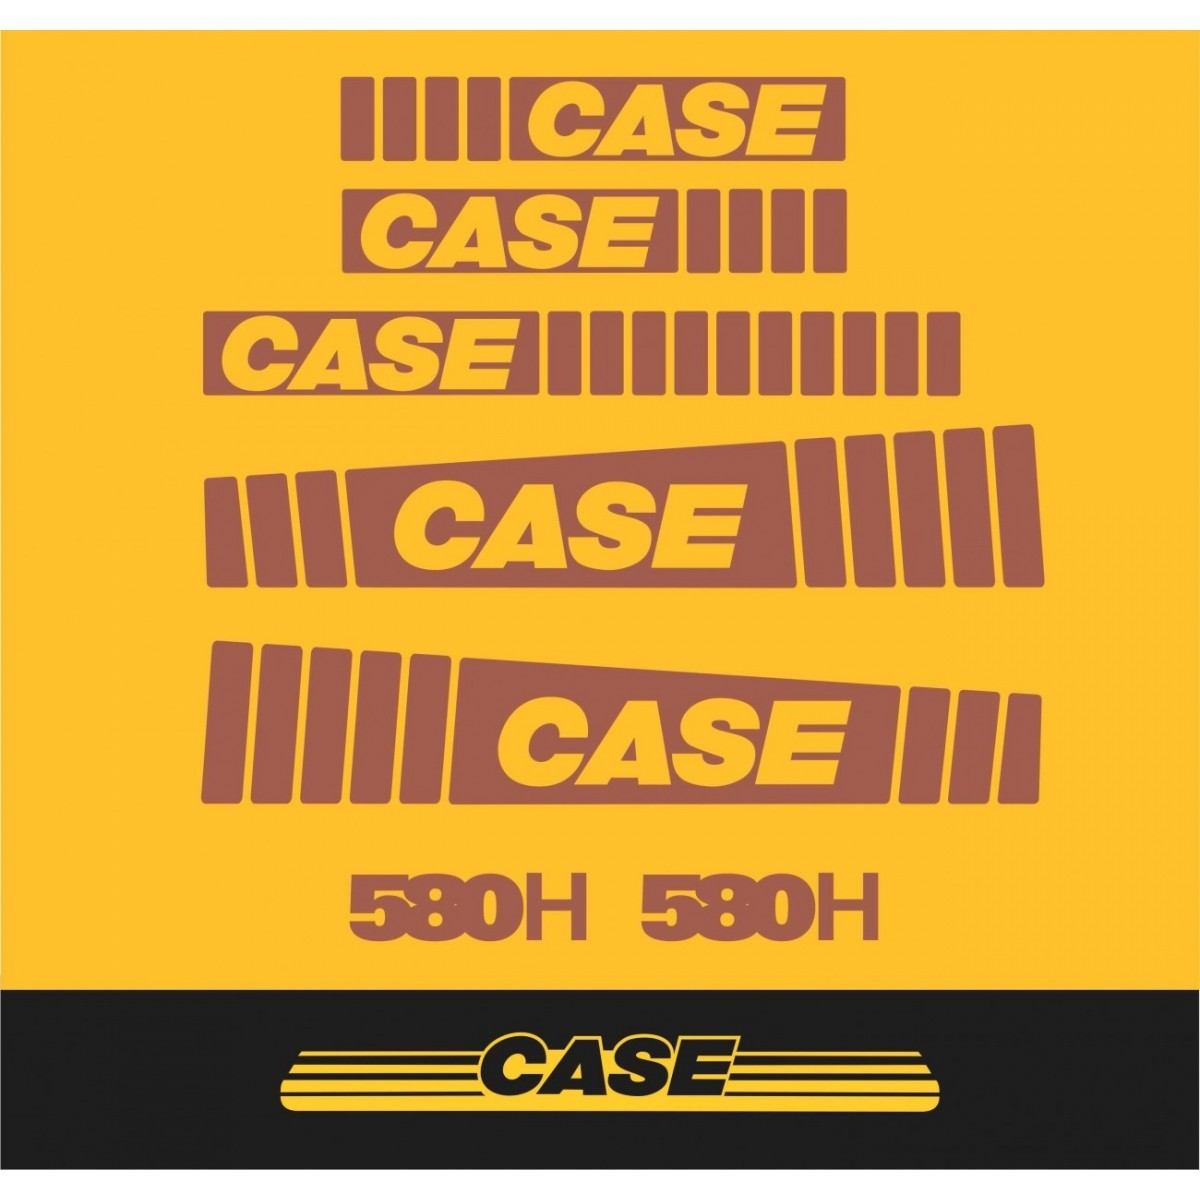 Kit Adesivos Case 580h - Decalx